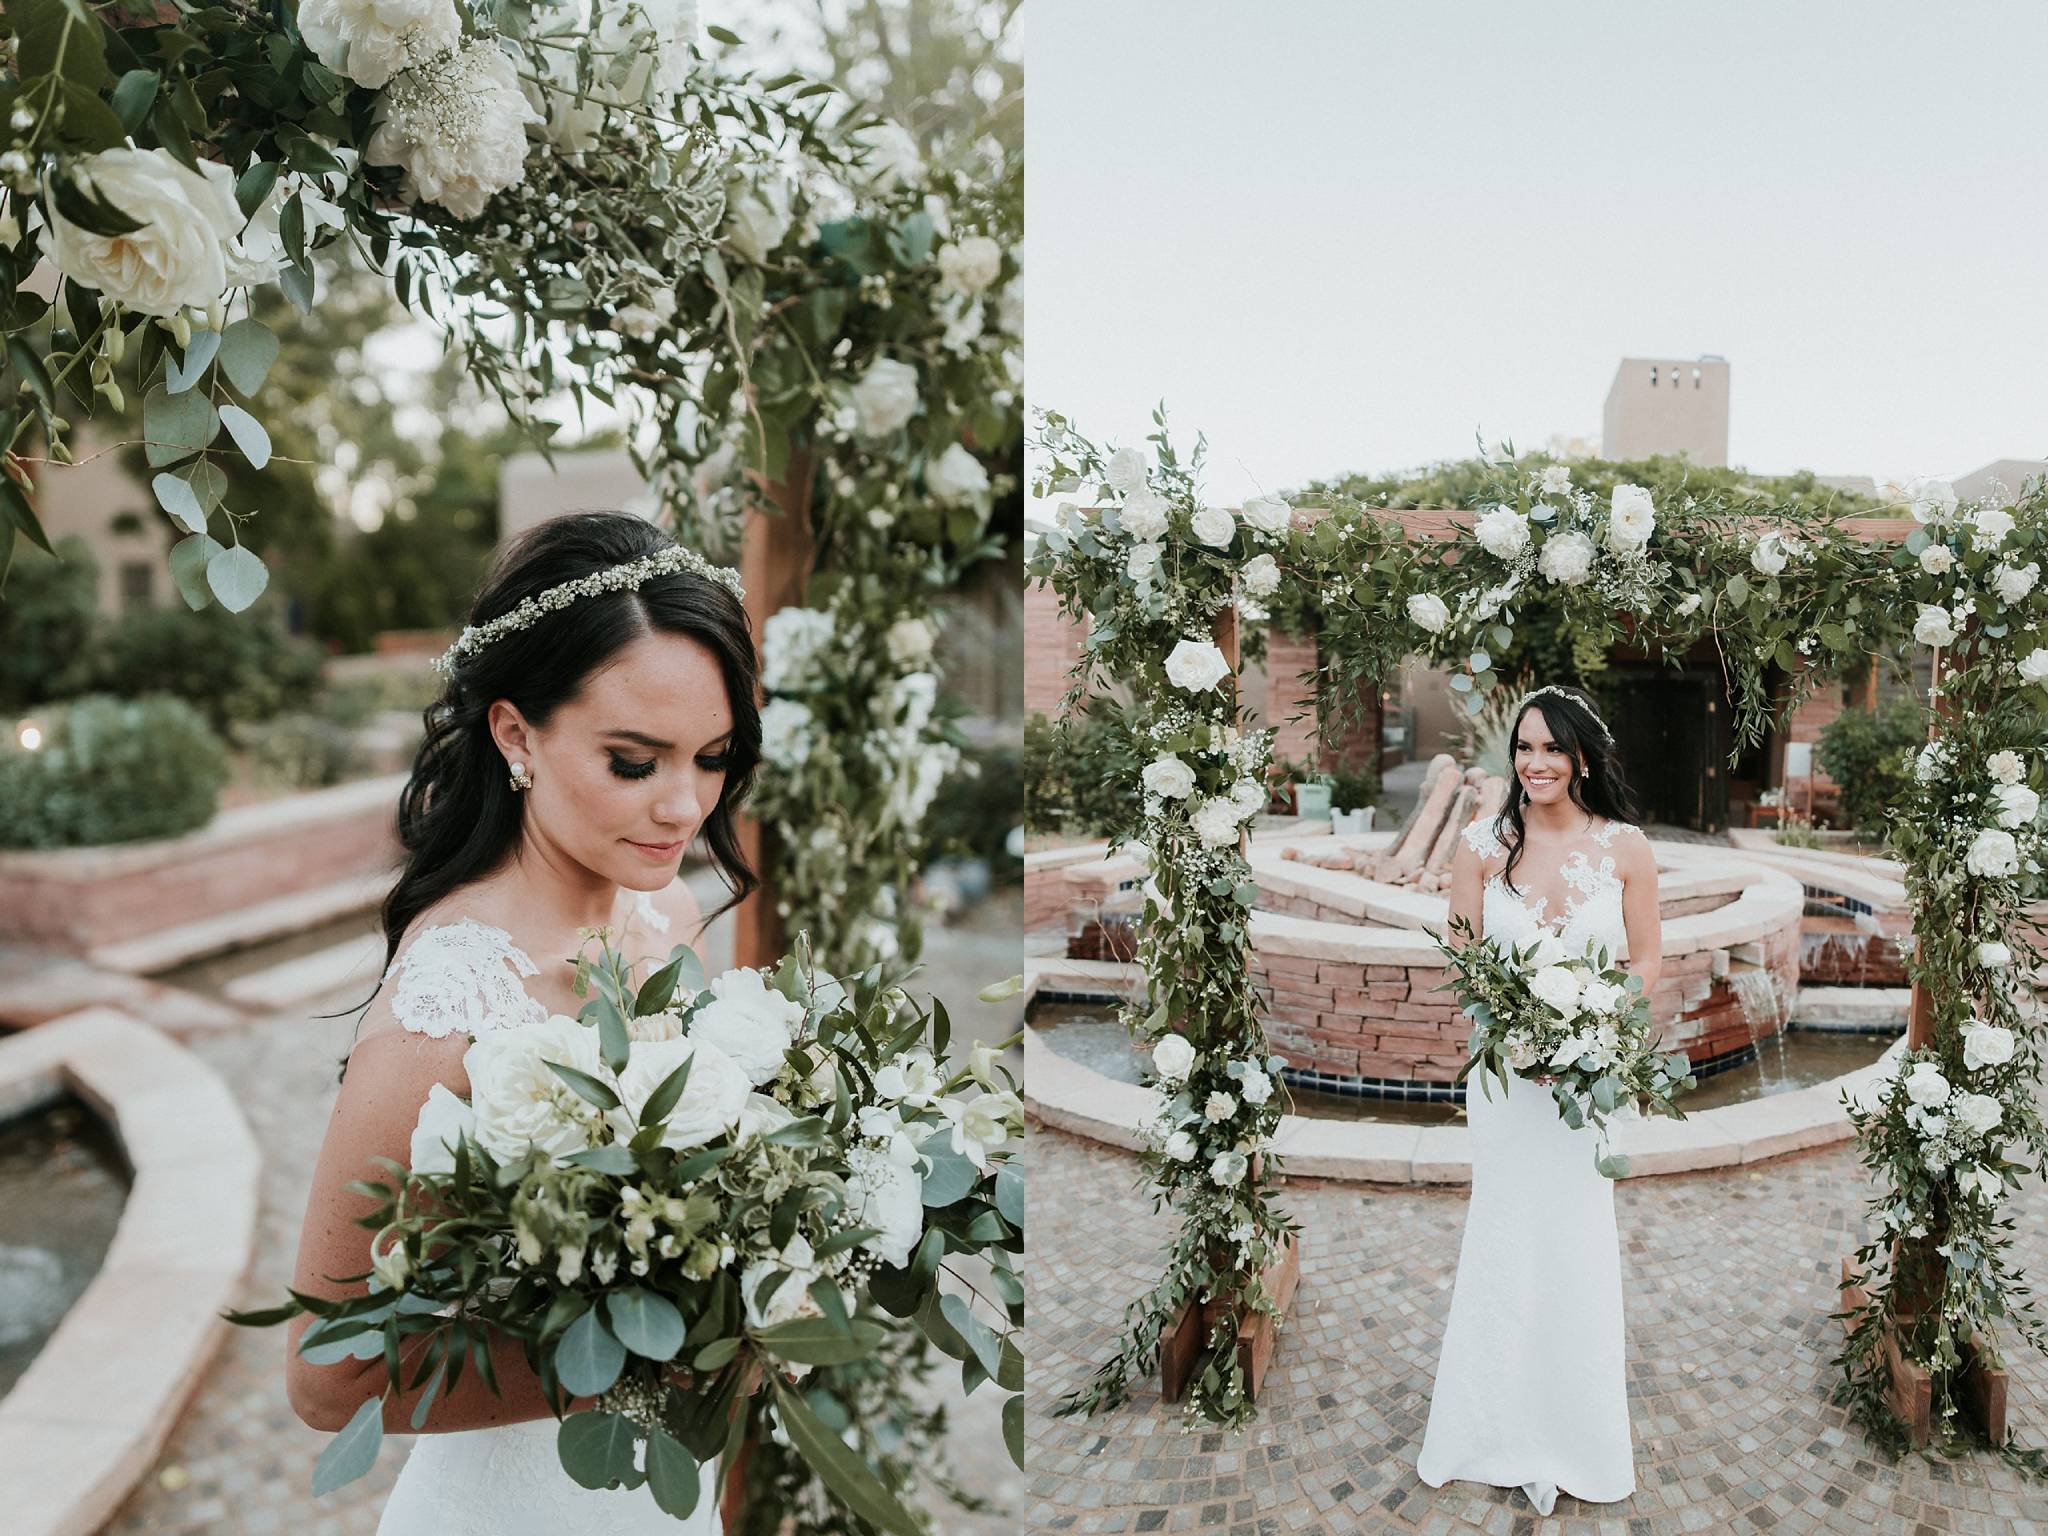 Alicia+lucia+photography+-+albuquerque+wedding+photographer+-+santa+fe+wedding+photography+-+new+mexico+wedding+photographer+-+new+mexico+florist+-+wedding+florist+-+renegade+floral_0019.jpg